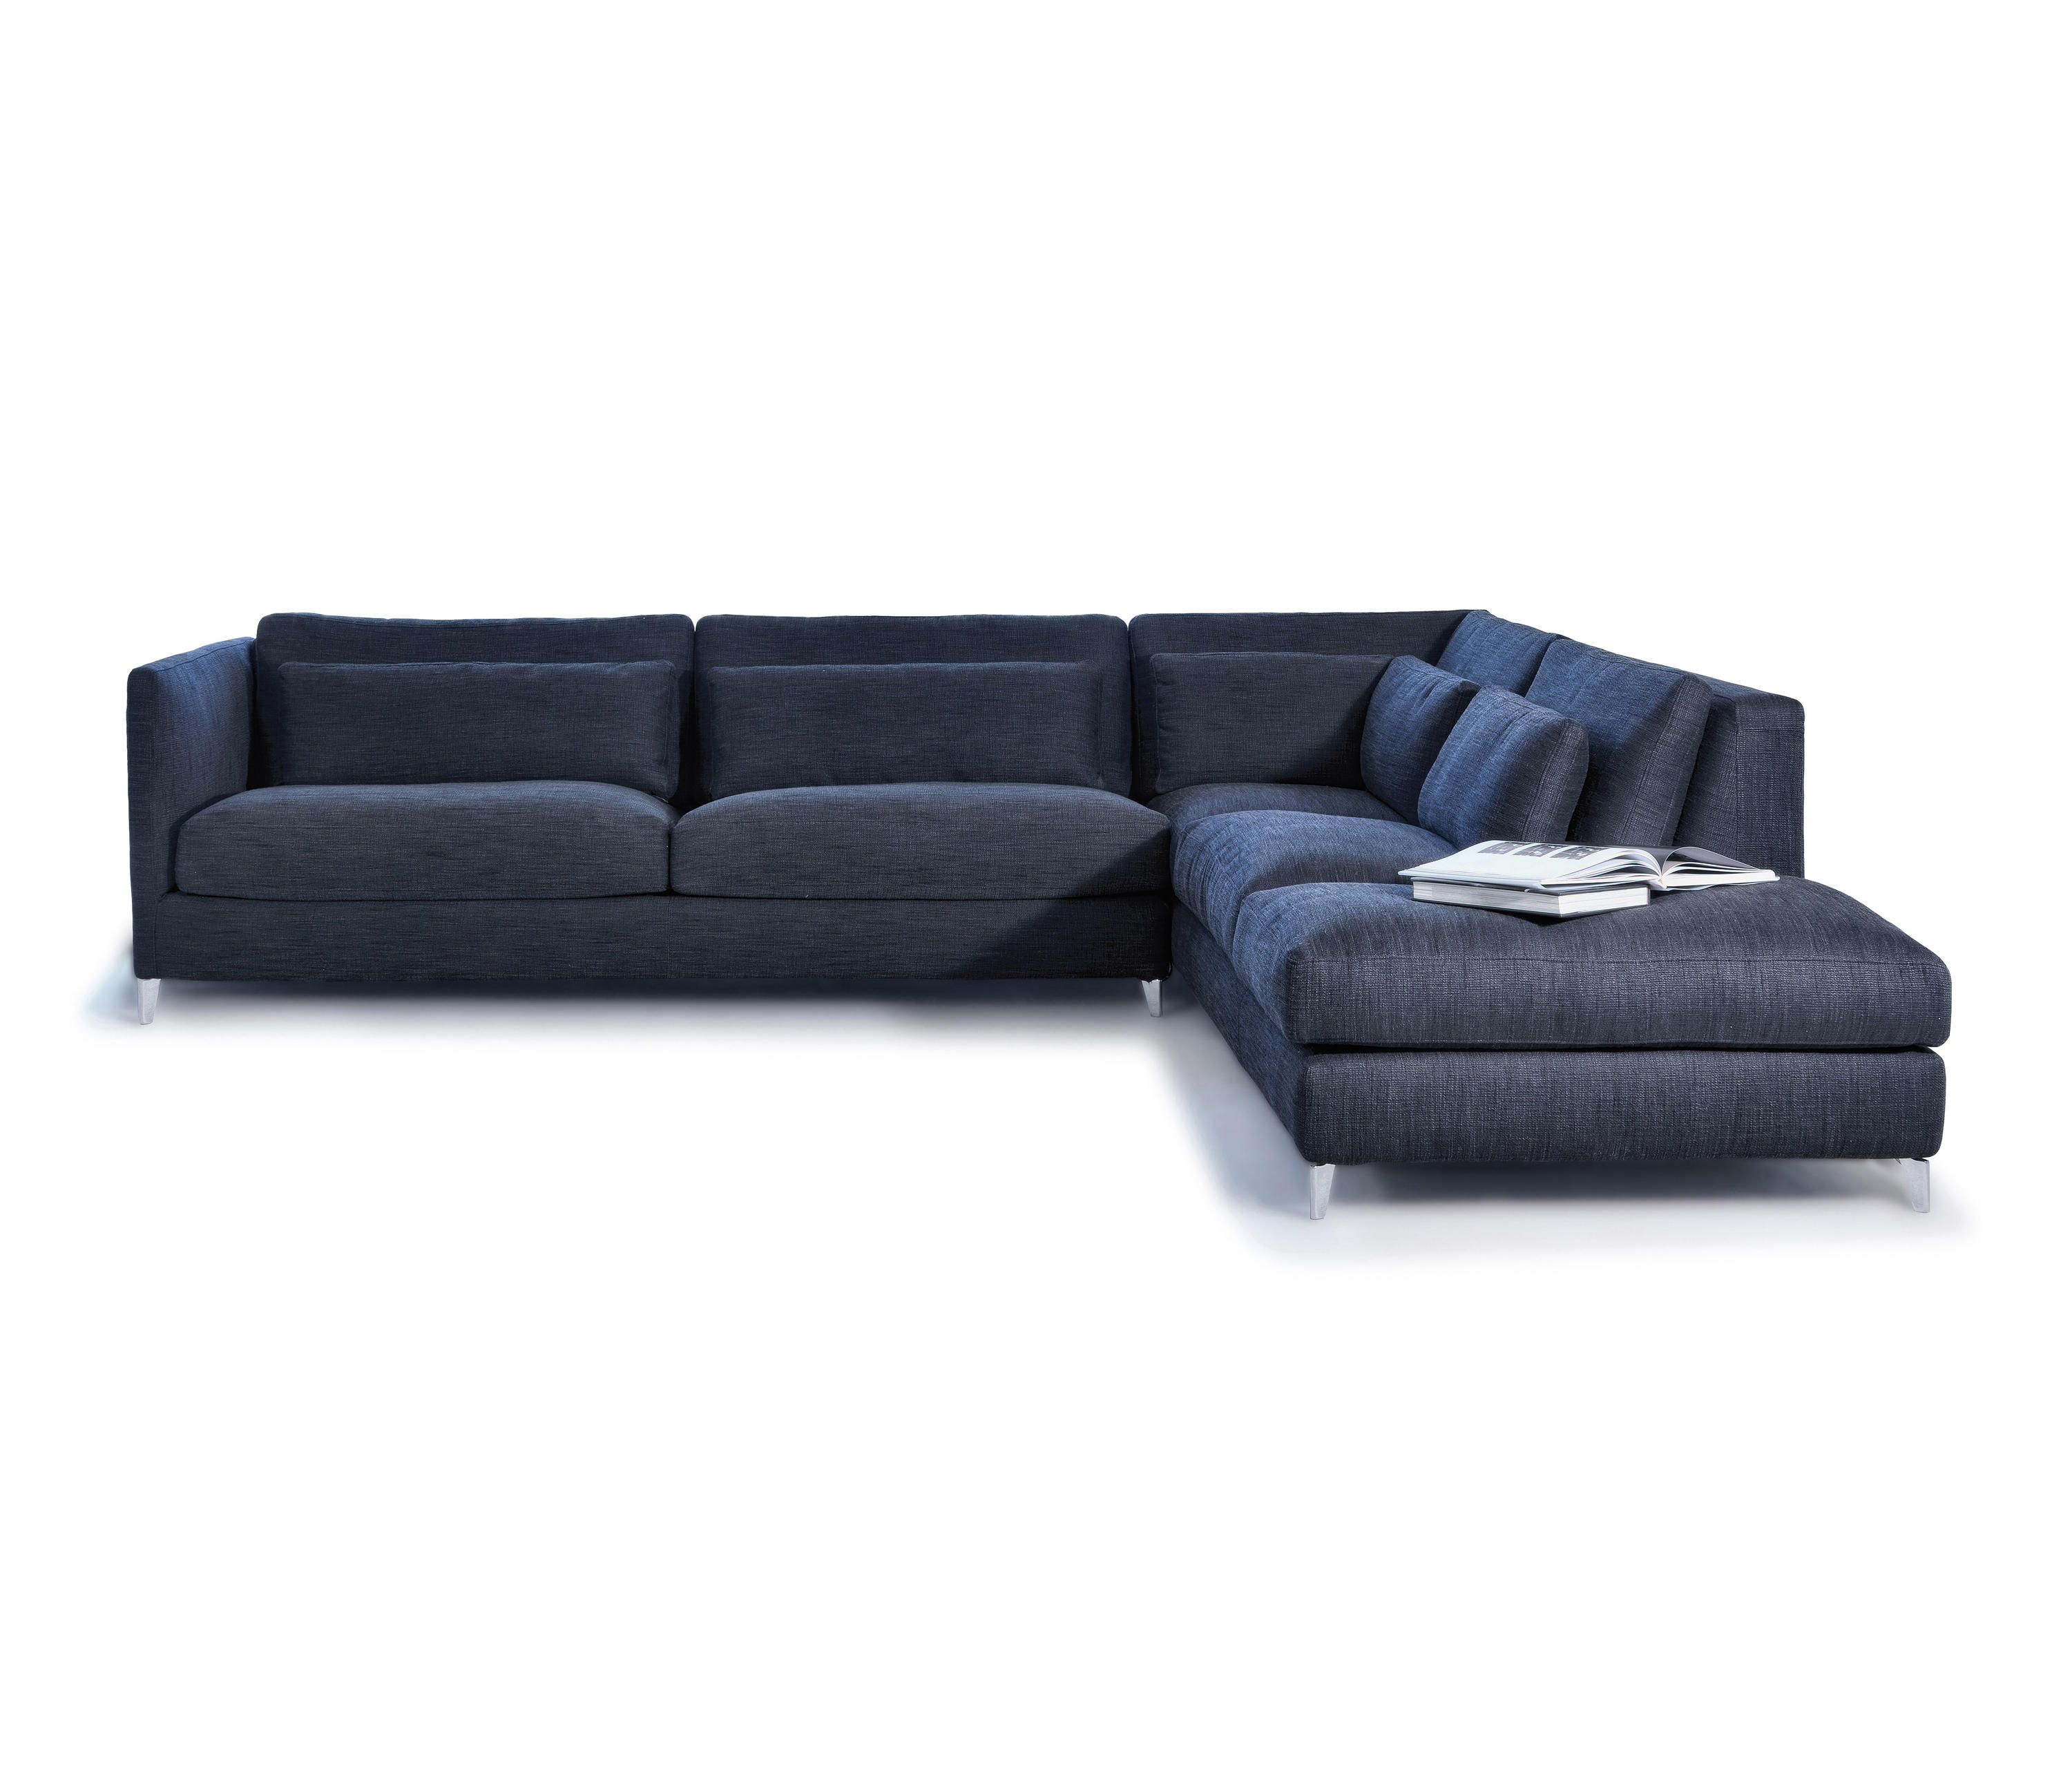 Zone 940 comfort xl sofa modular sofa systems from vibieffe zone 940 comfort xl sofa by vibieffe modular sofa systems parisarafo Gallery